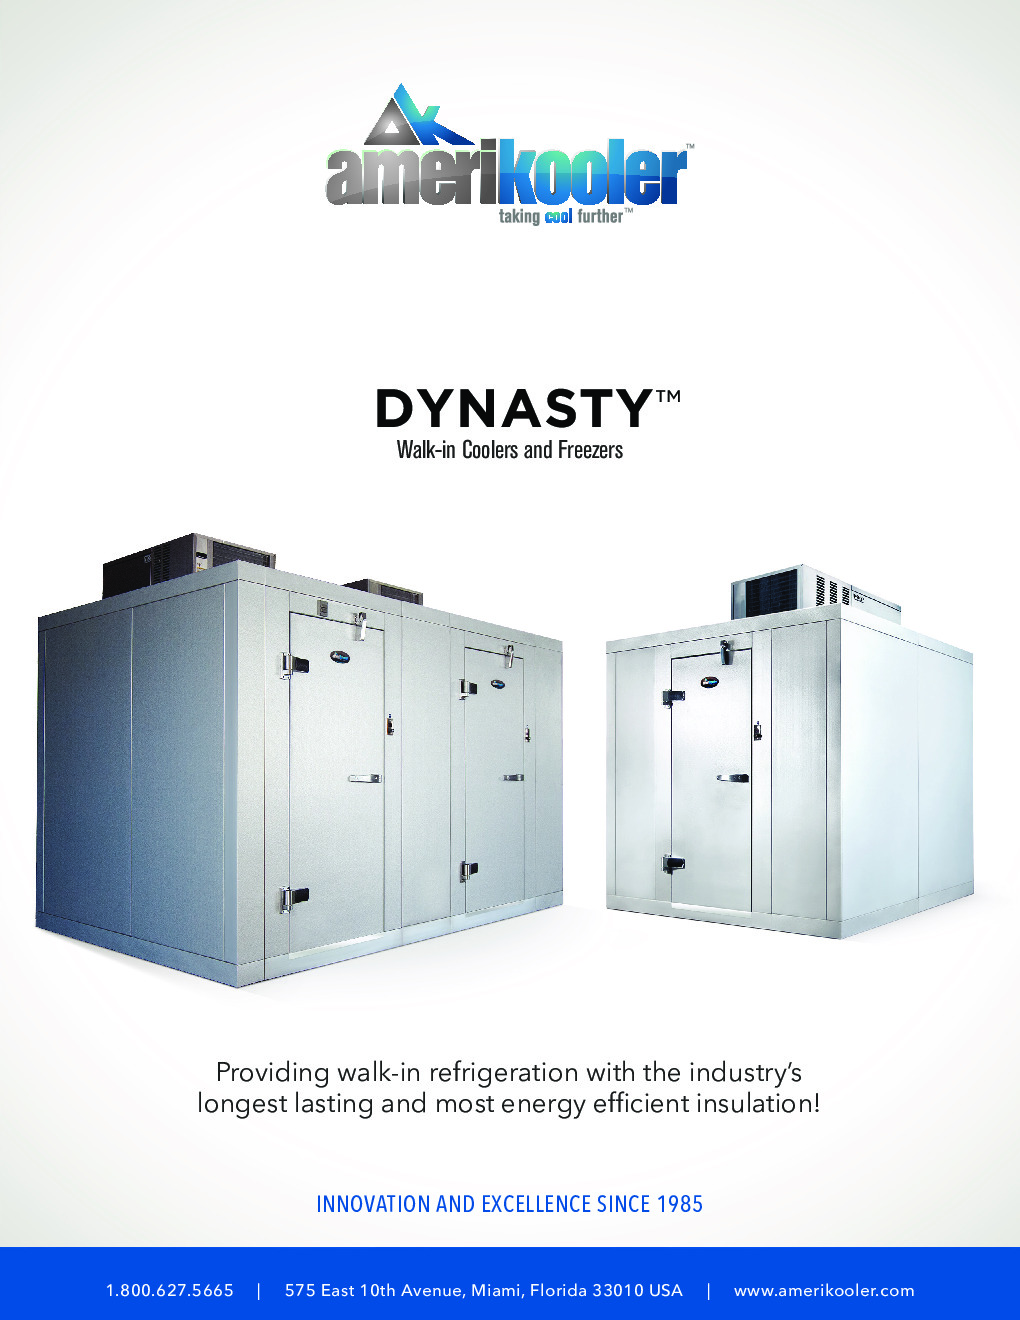 AmeriKooler DW061277N-4/8-RM 6' X 12' Walk-In Cooler, 8' L Cooler without Floor and 4' L Freezer, Remote